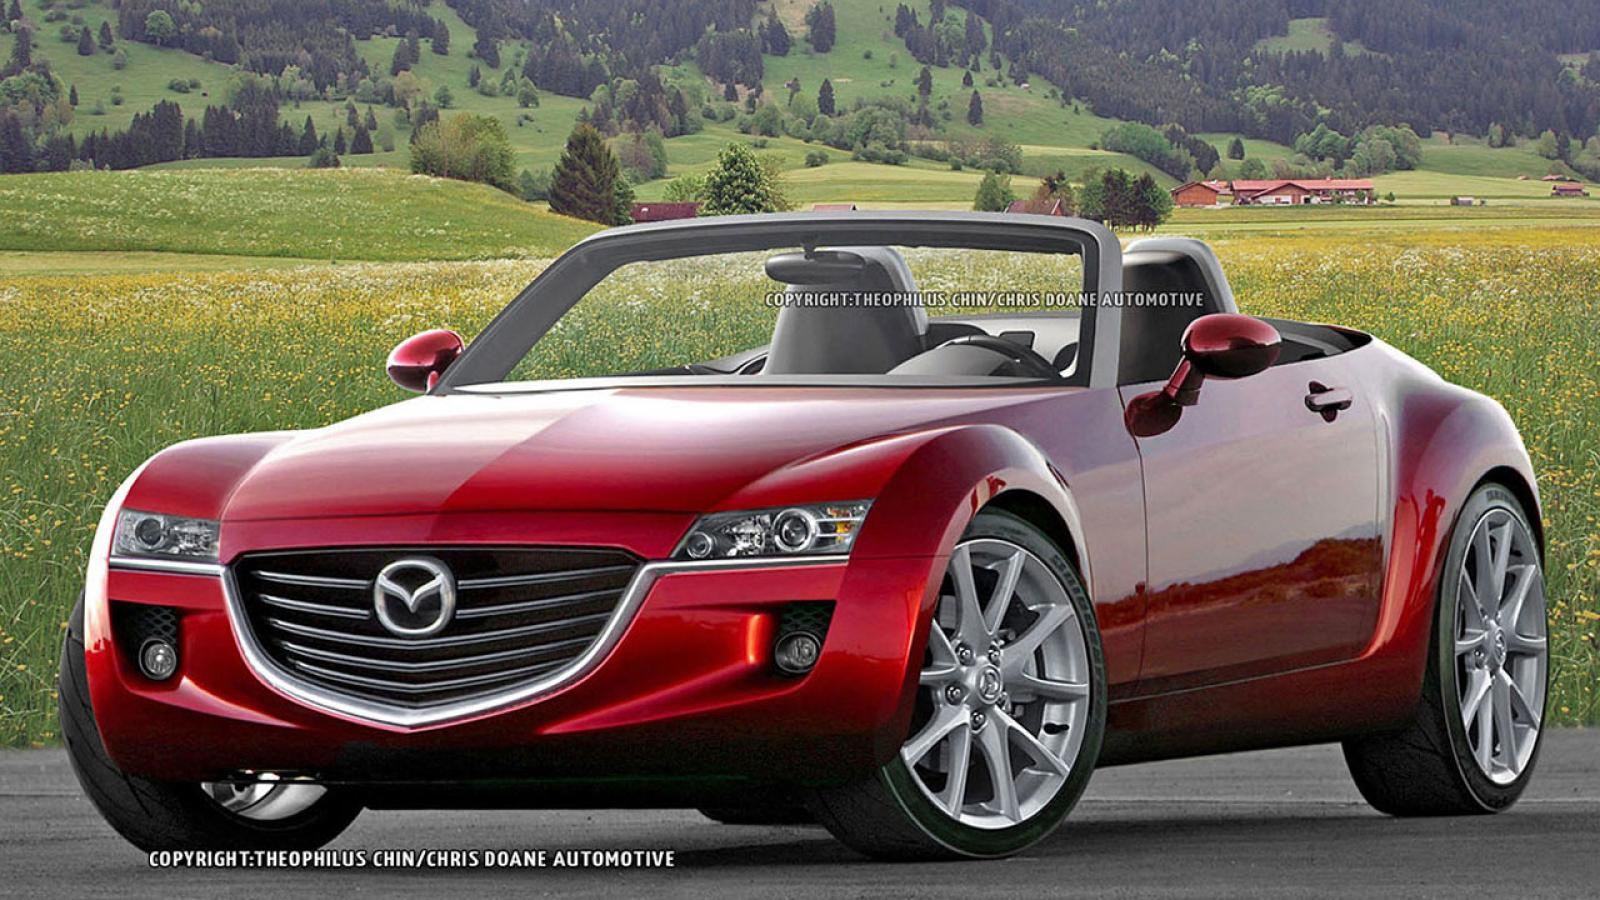 2014 mazda mx 5 miata information and photos zombiedrive. Black Bedroom Furniture Sets. Home Design Ideas